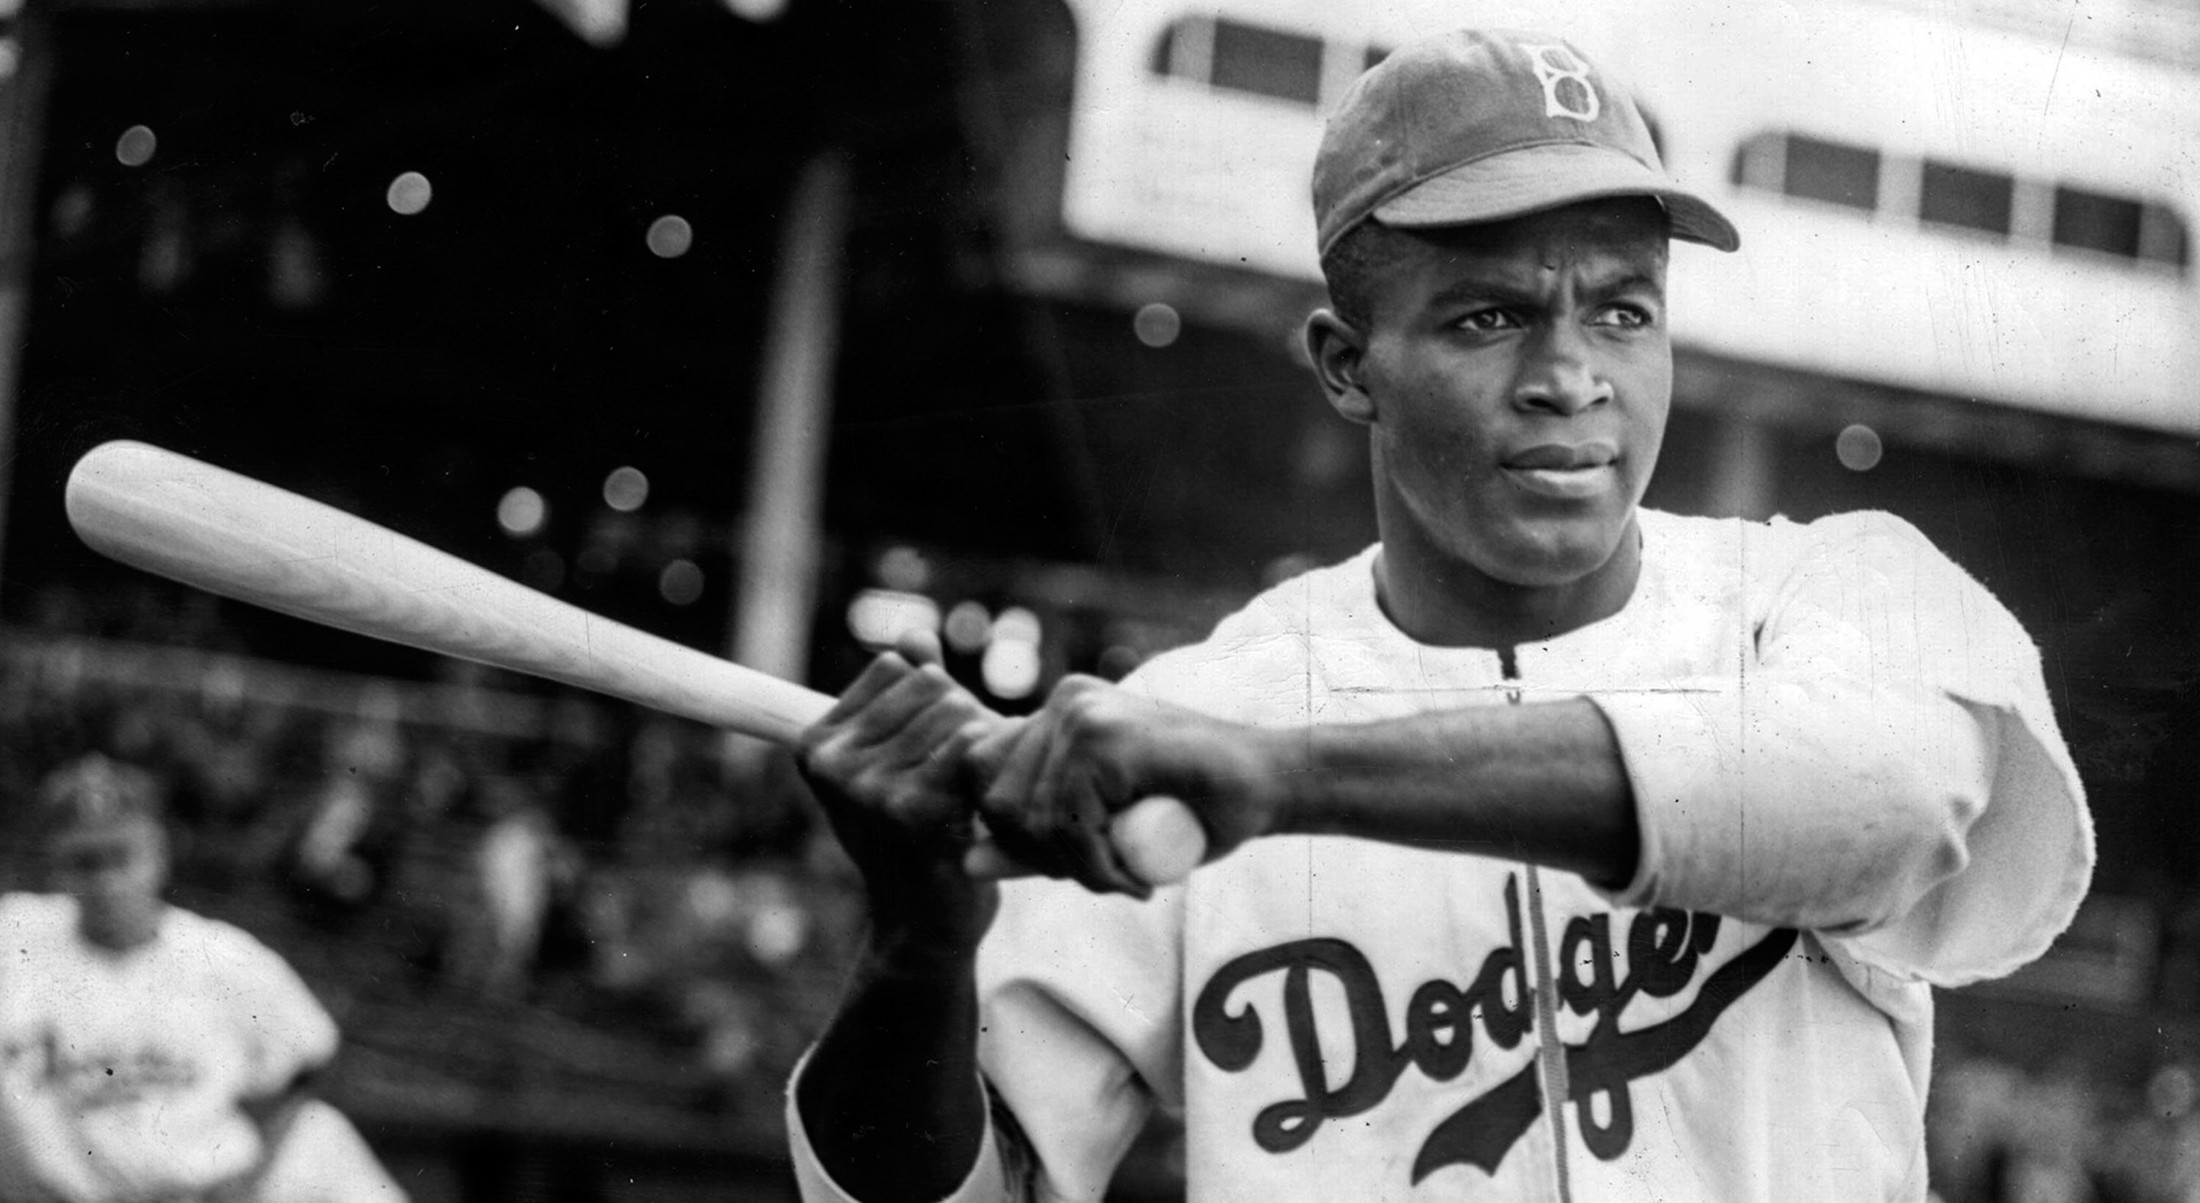 Jackie Robinson, famous Civil Rights activist and baseball player, at the plate in a Brooklyn Dodgers jersey